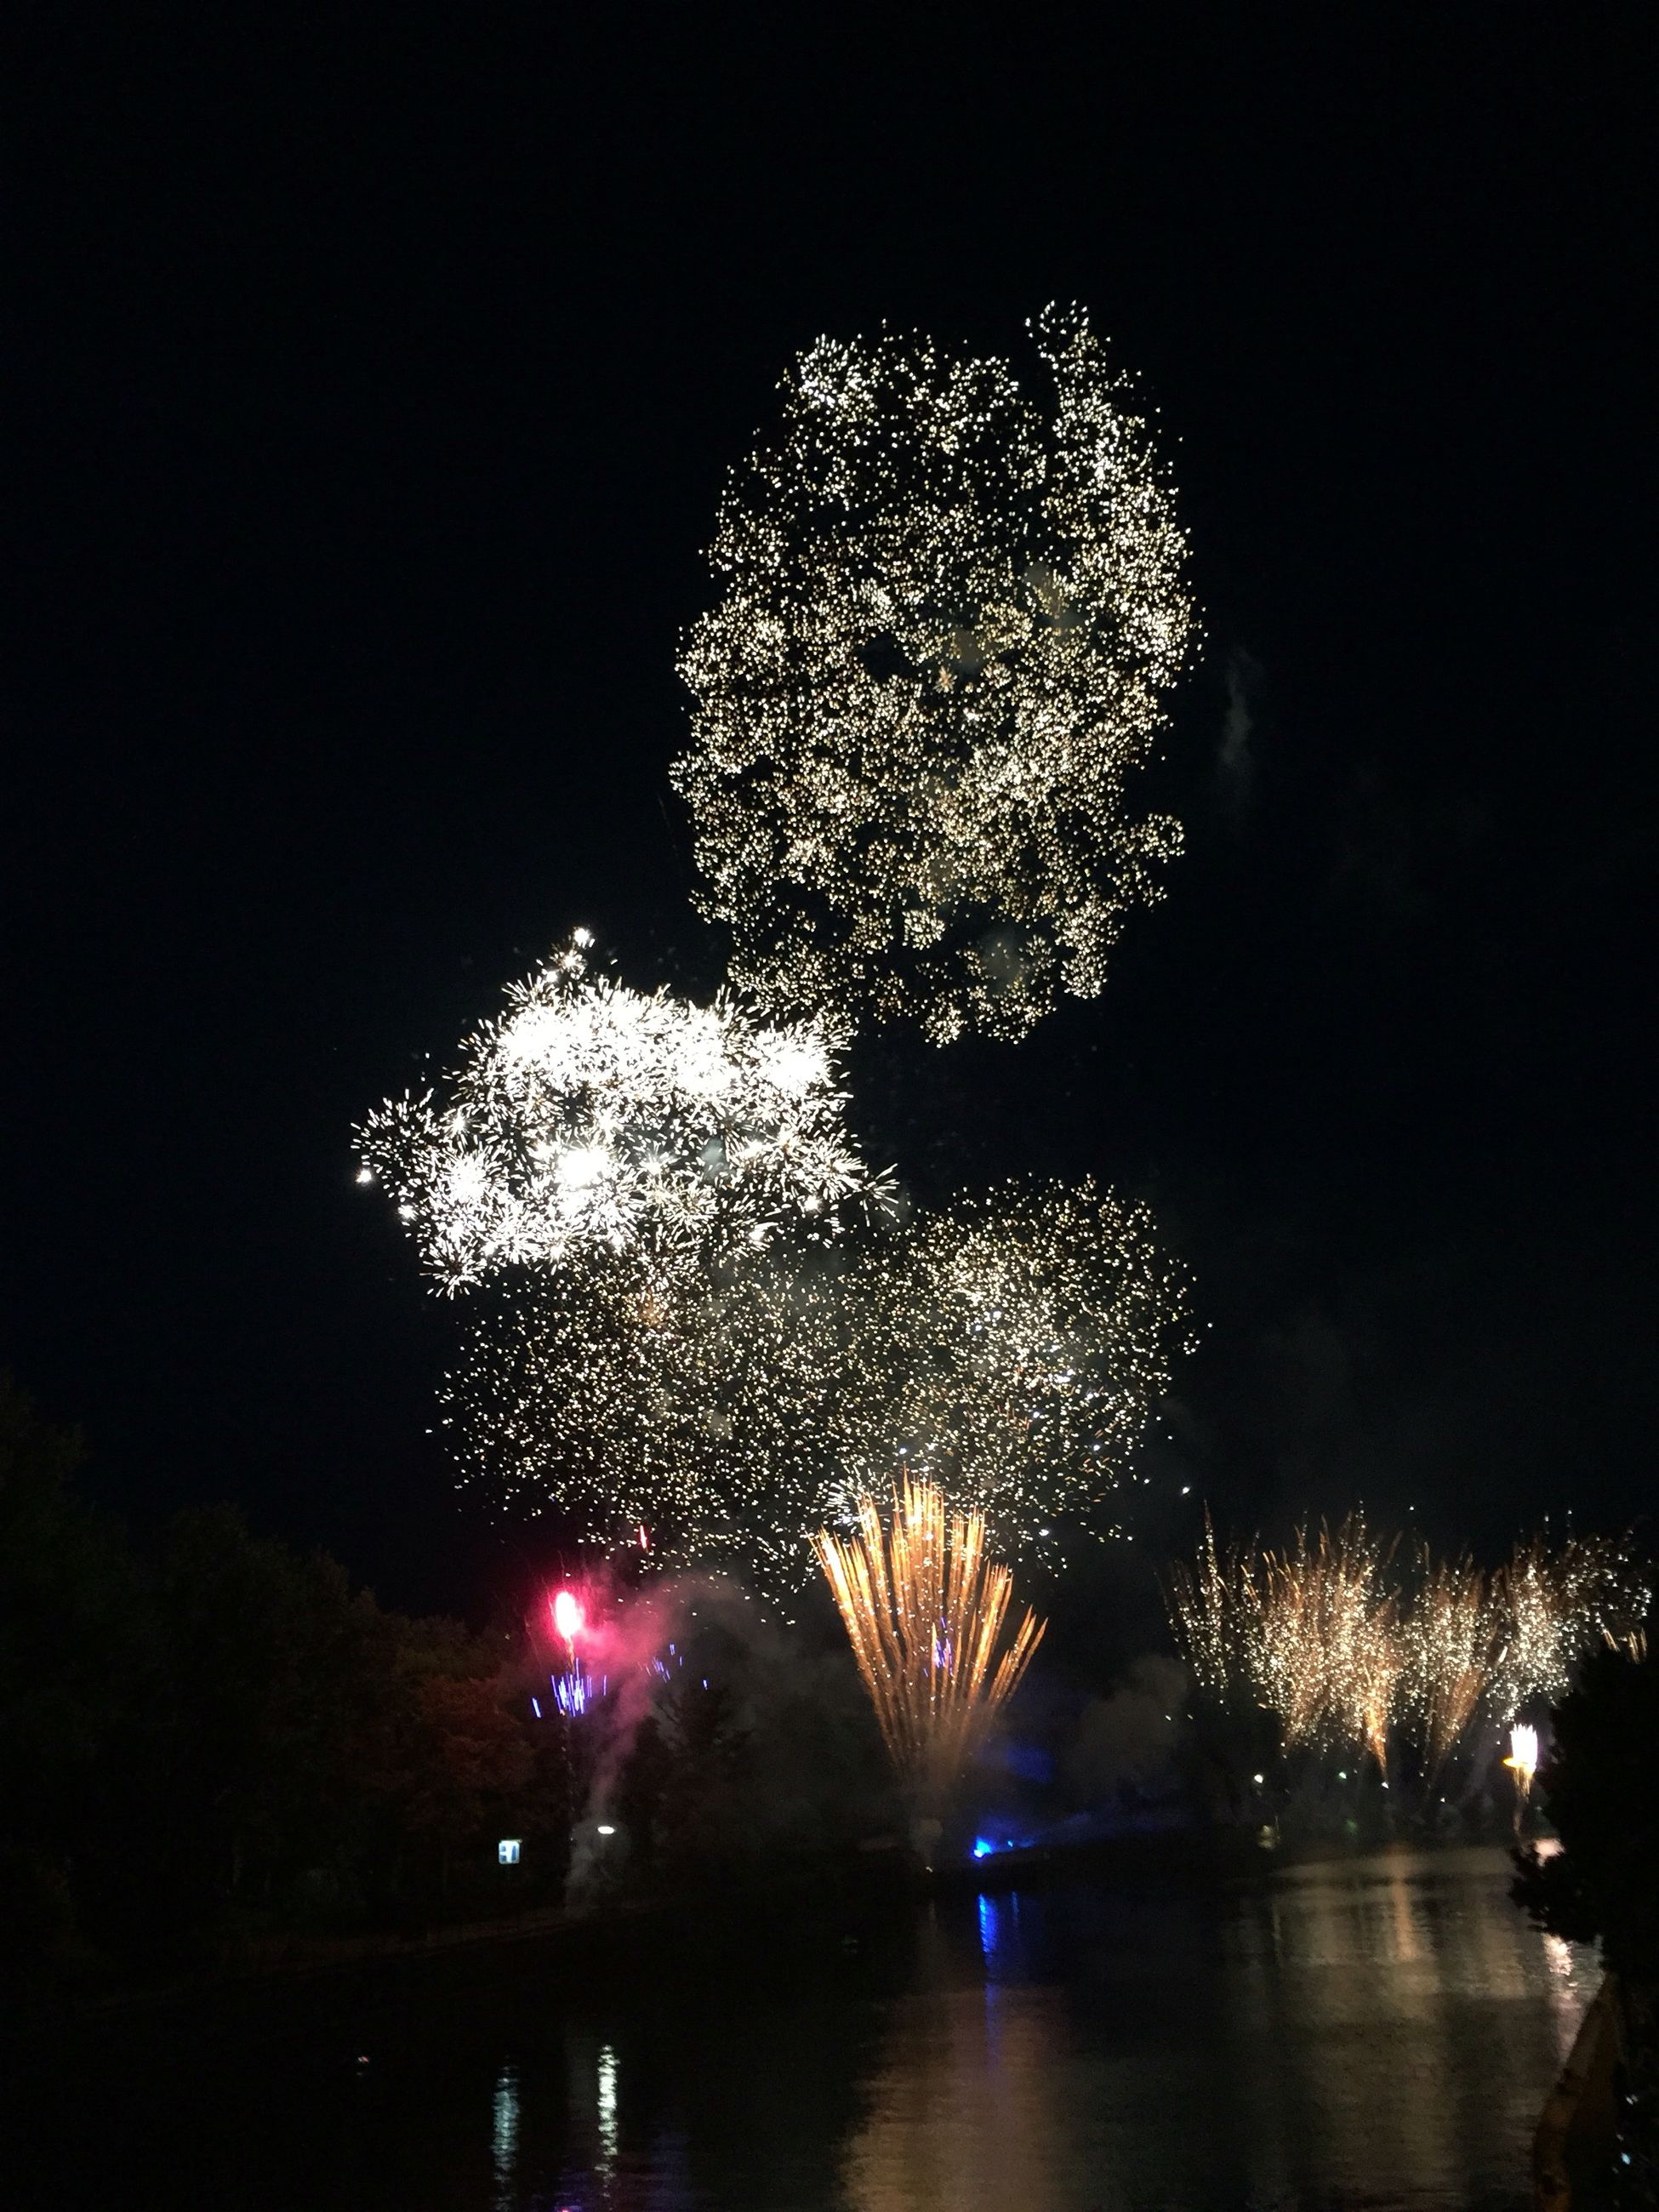 illuminated, night, firework display, celebration, low angle view, long exposure, arts culture and entertainment, glowing, motion, sky, firework - man made object, reflection, exploding, water, firework, built structure, architecture, fountain, blurred motion, tree